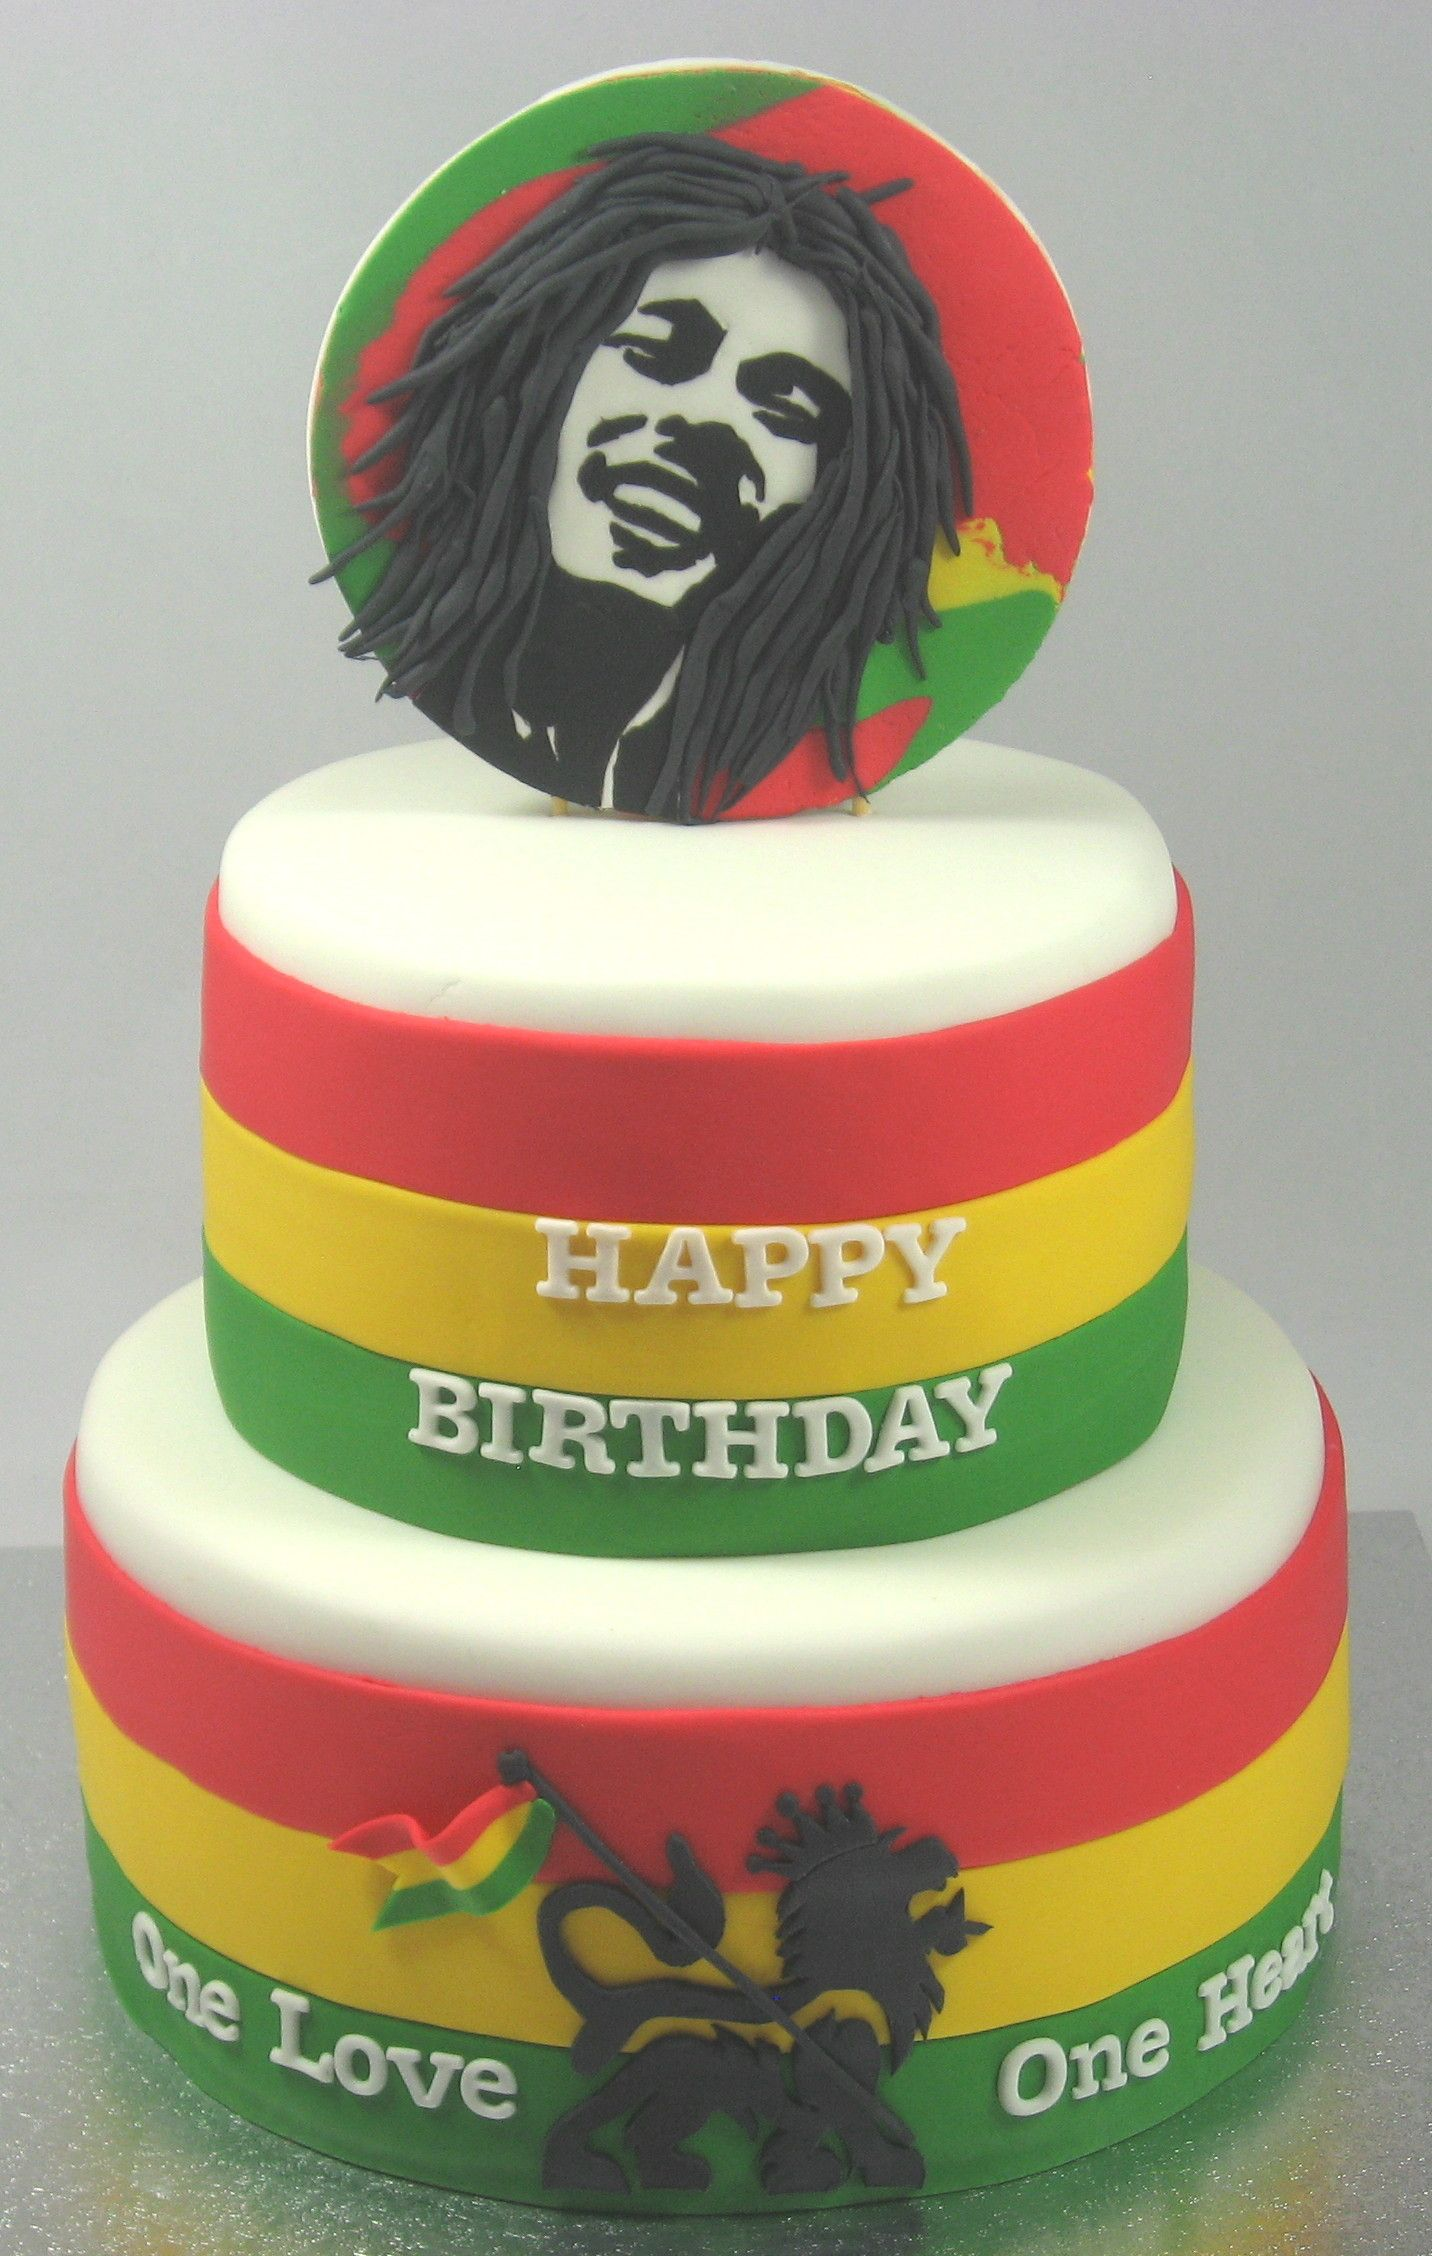 Bob Marley 2 tiered cake by https://www.facebook.com/